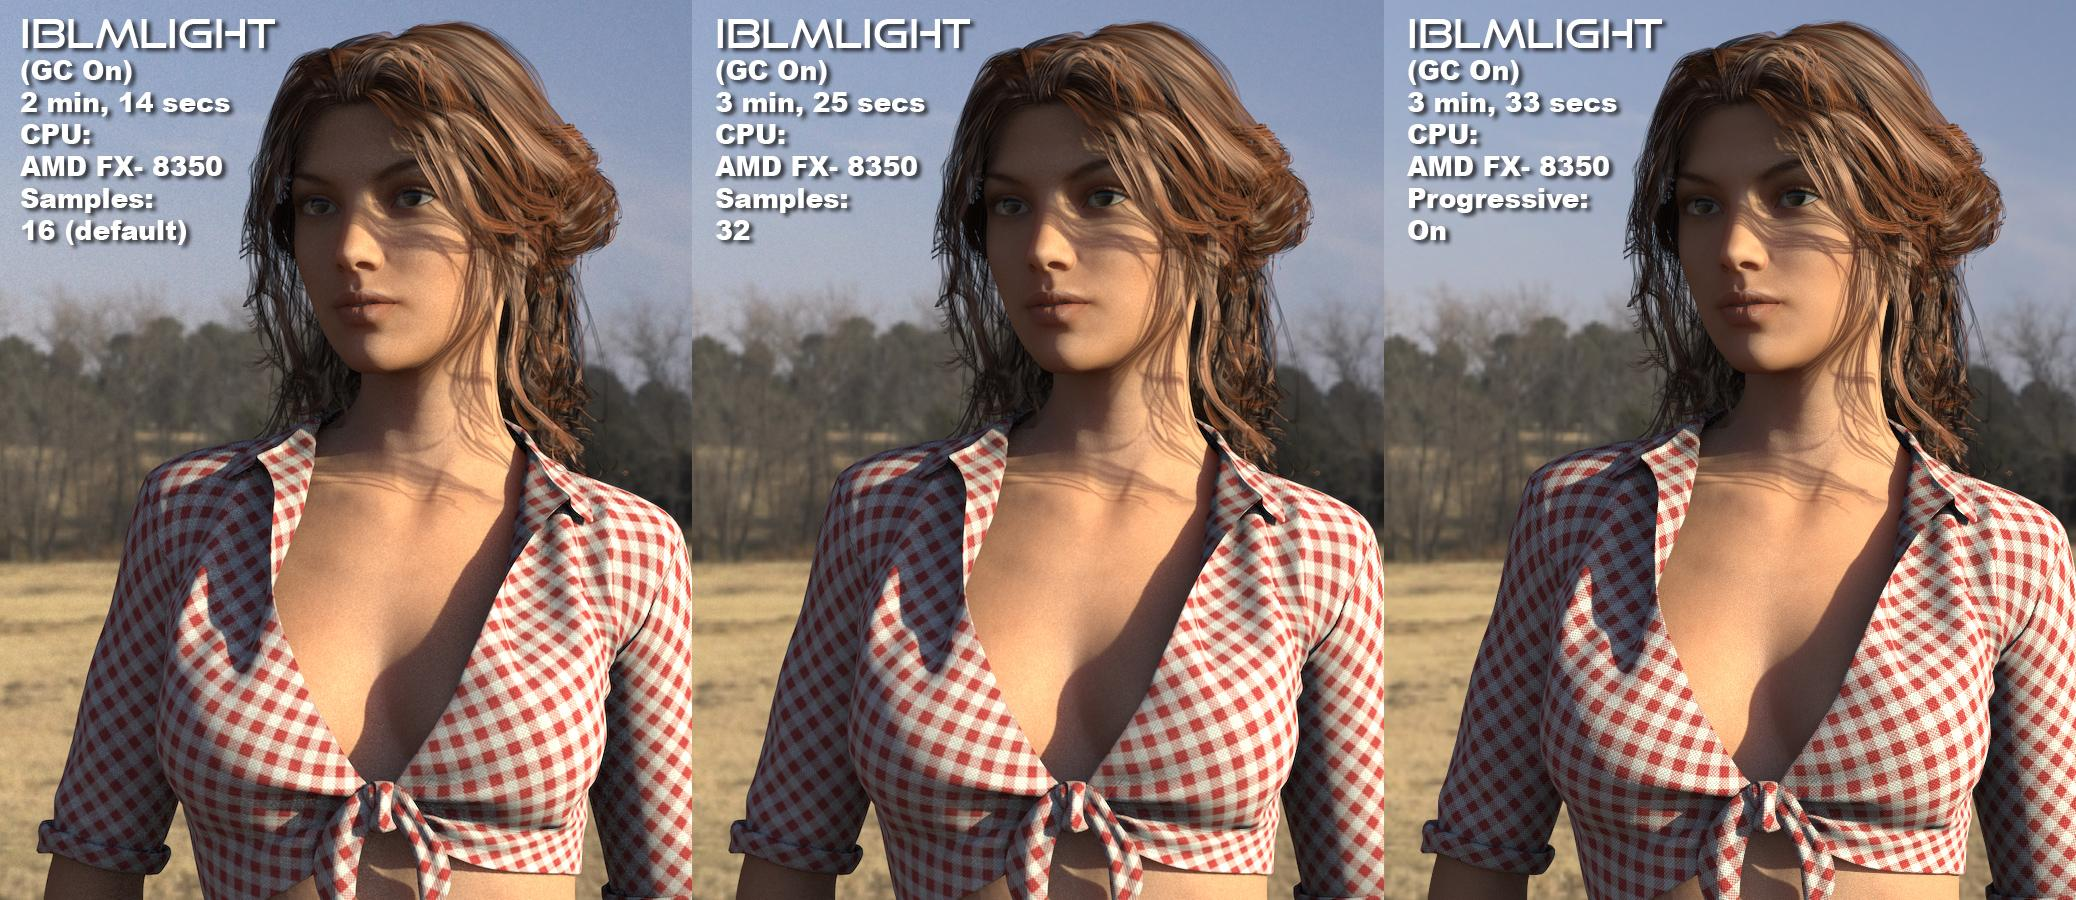 IBLMLight: Default Samples Vs 32 Samples Vs Progressive Rendering On